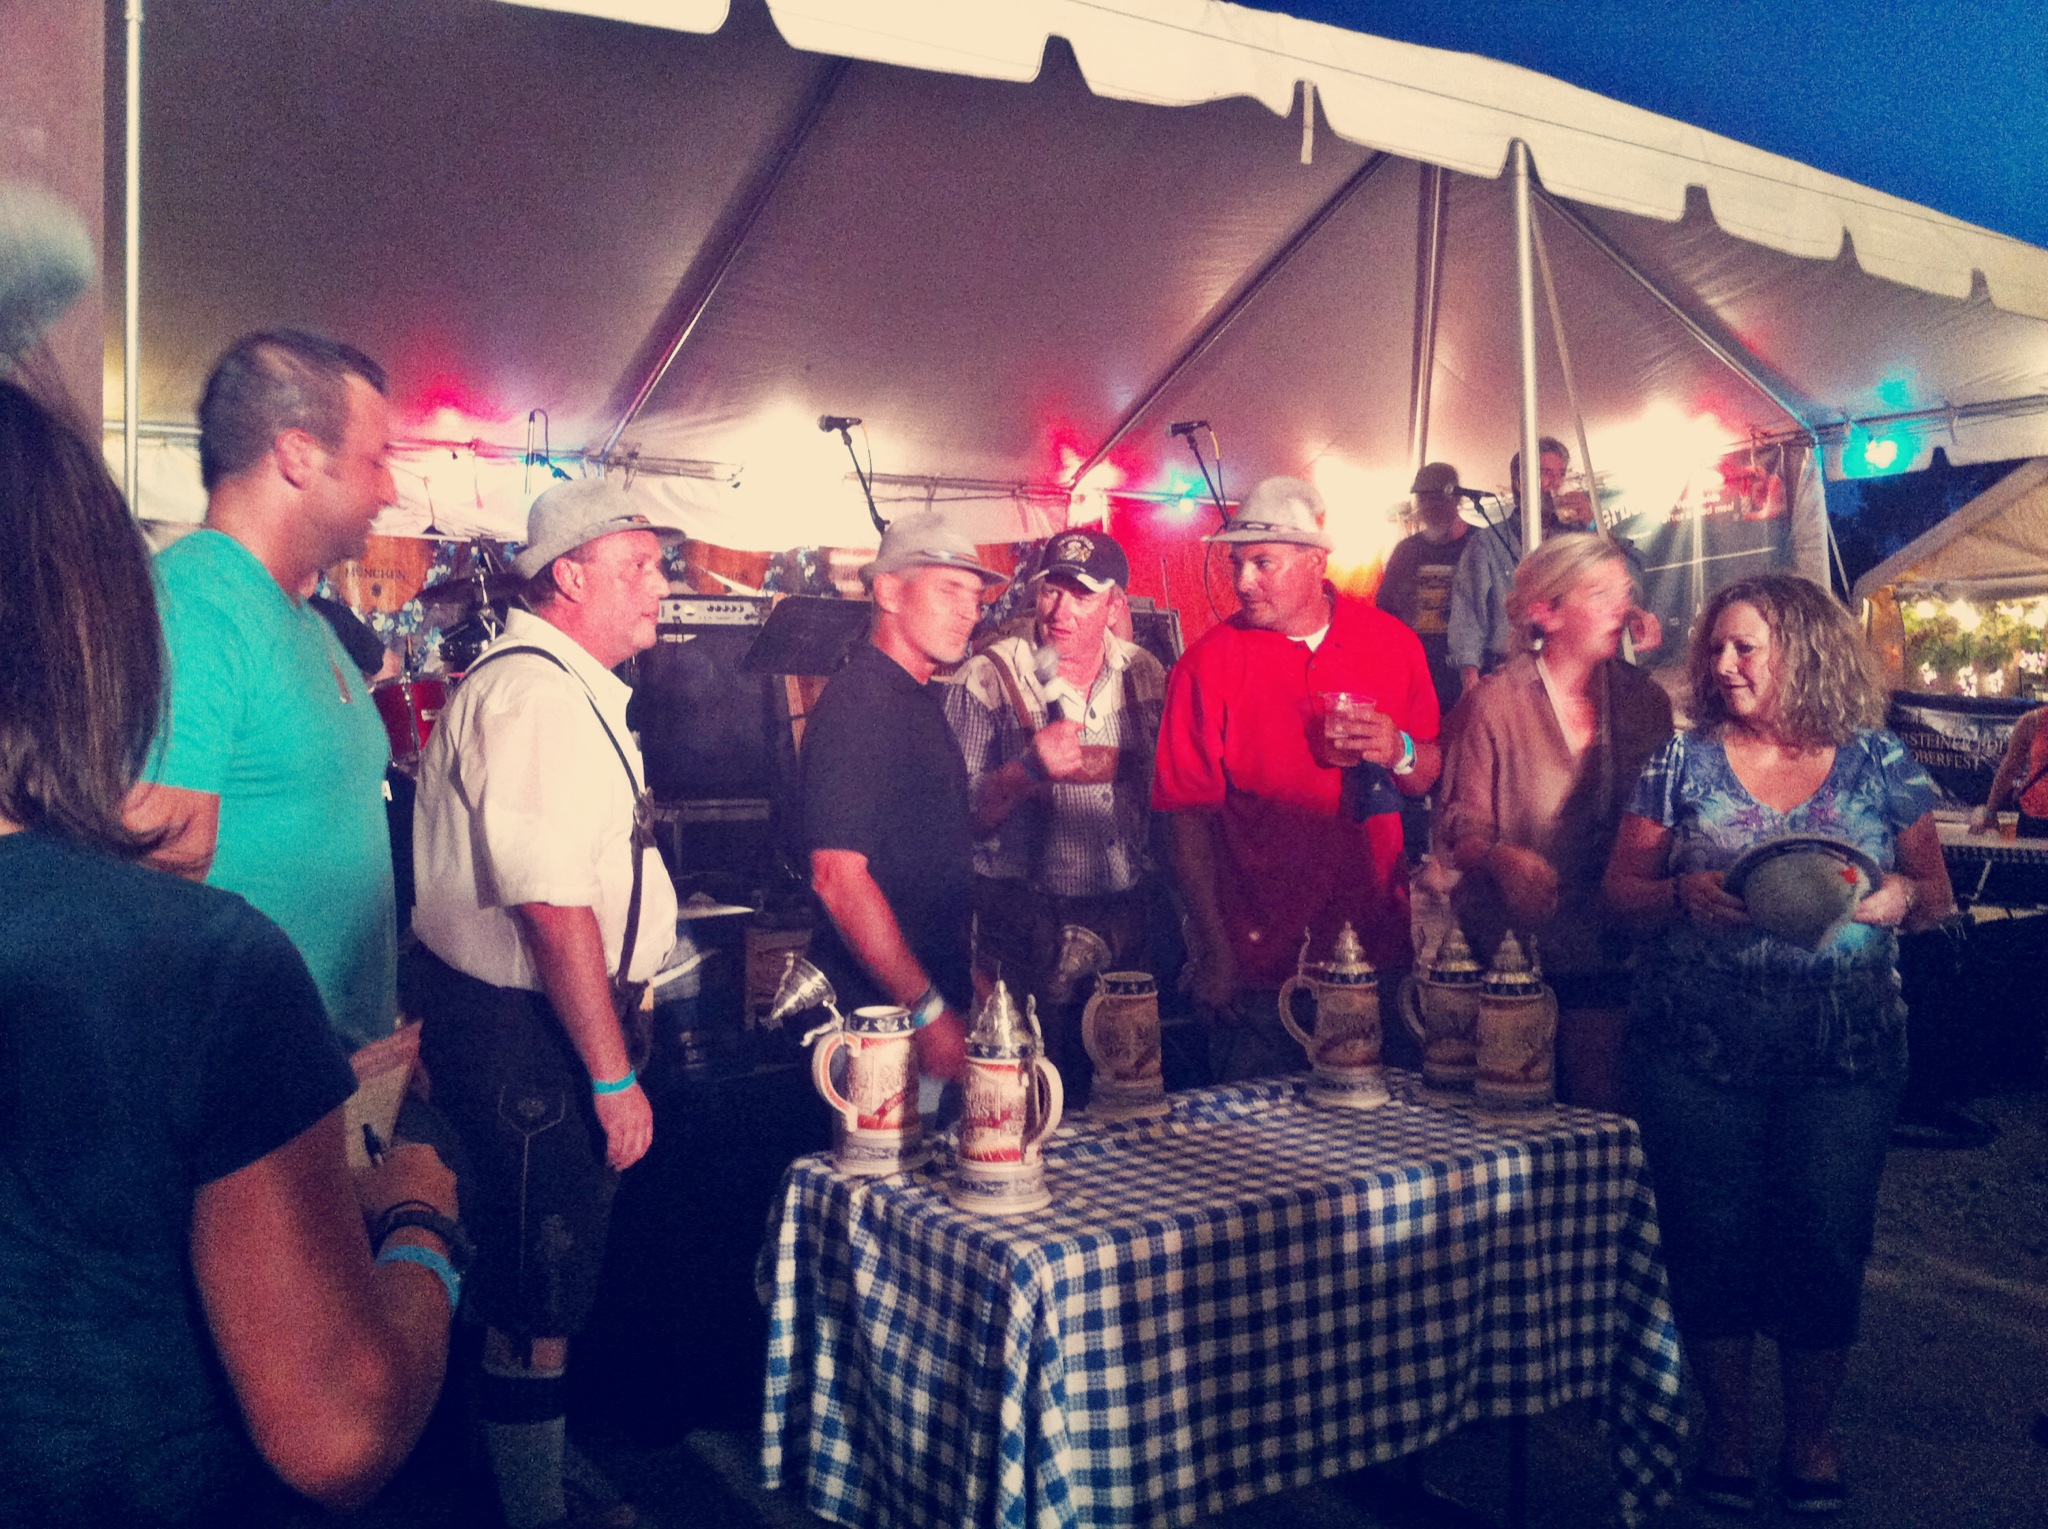 A beer stein holding contest.